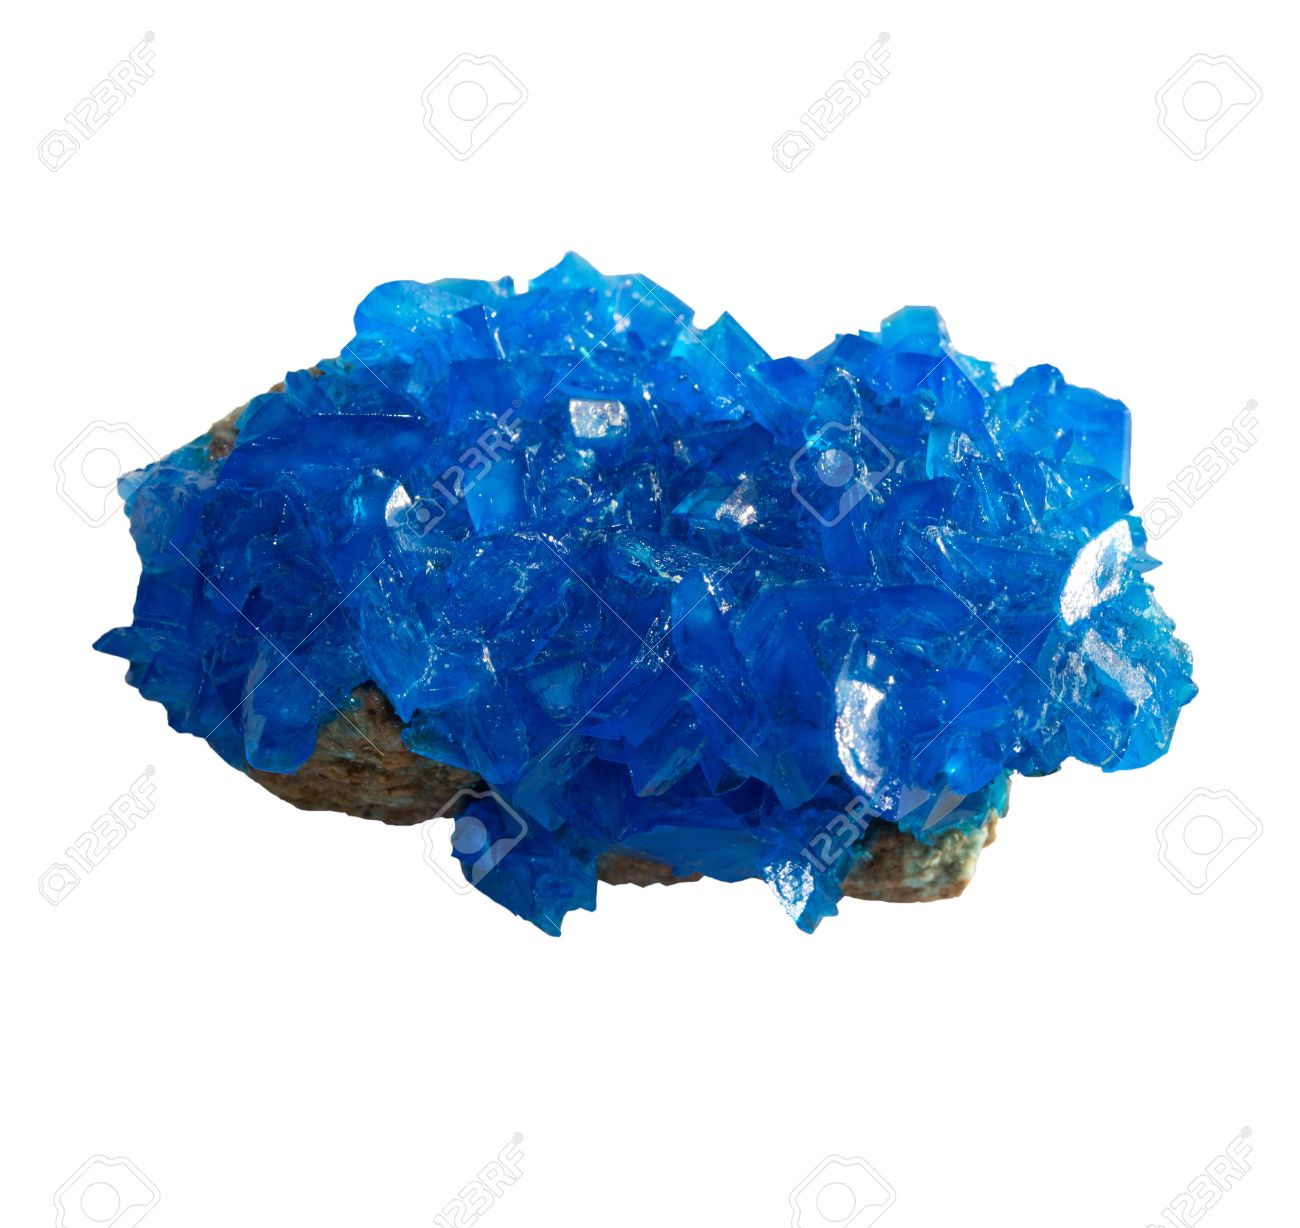 Blue mineral chalcanthite (copper sulfate) on stone on a white background - 21223369